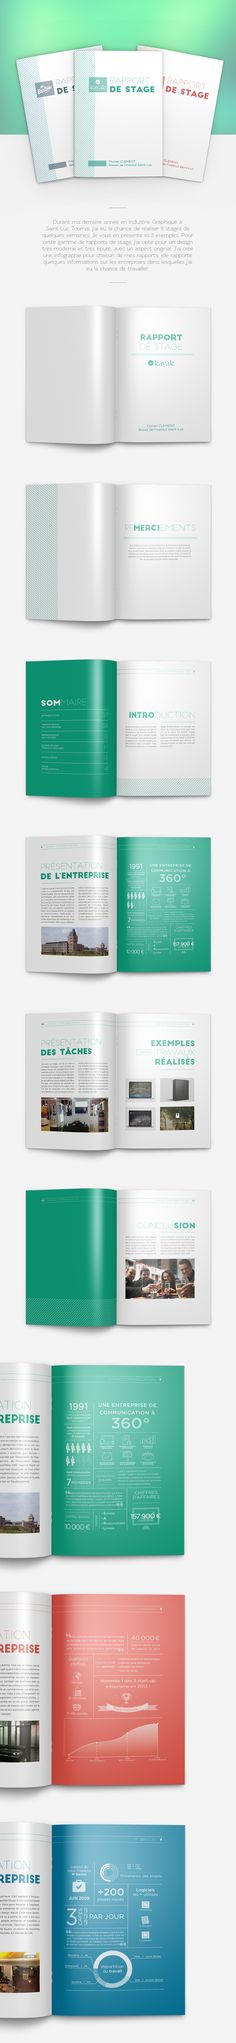 Rapport de stage on Behance                                                                                                                                                      Plus